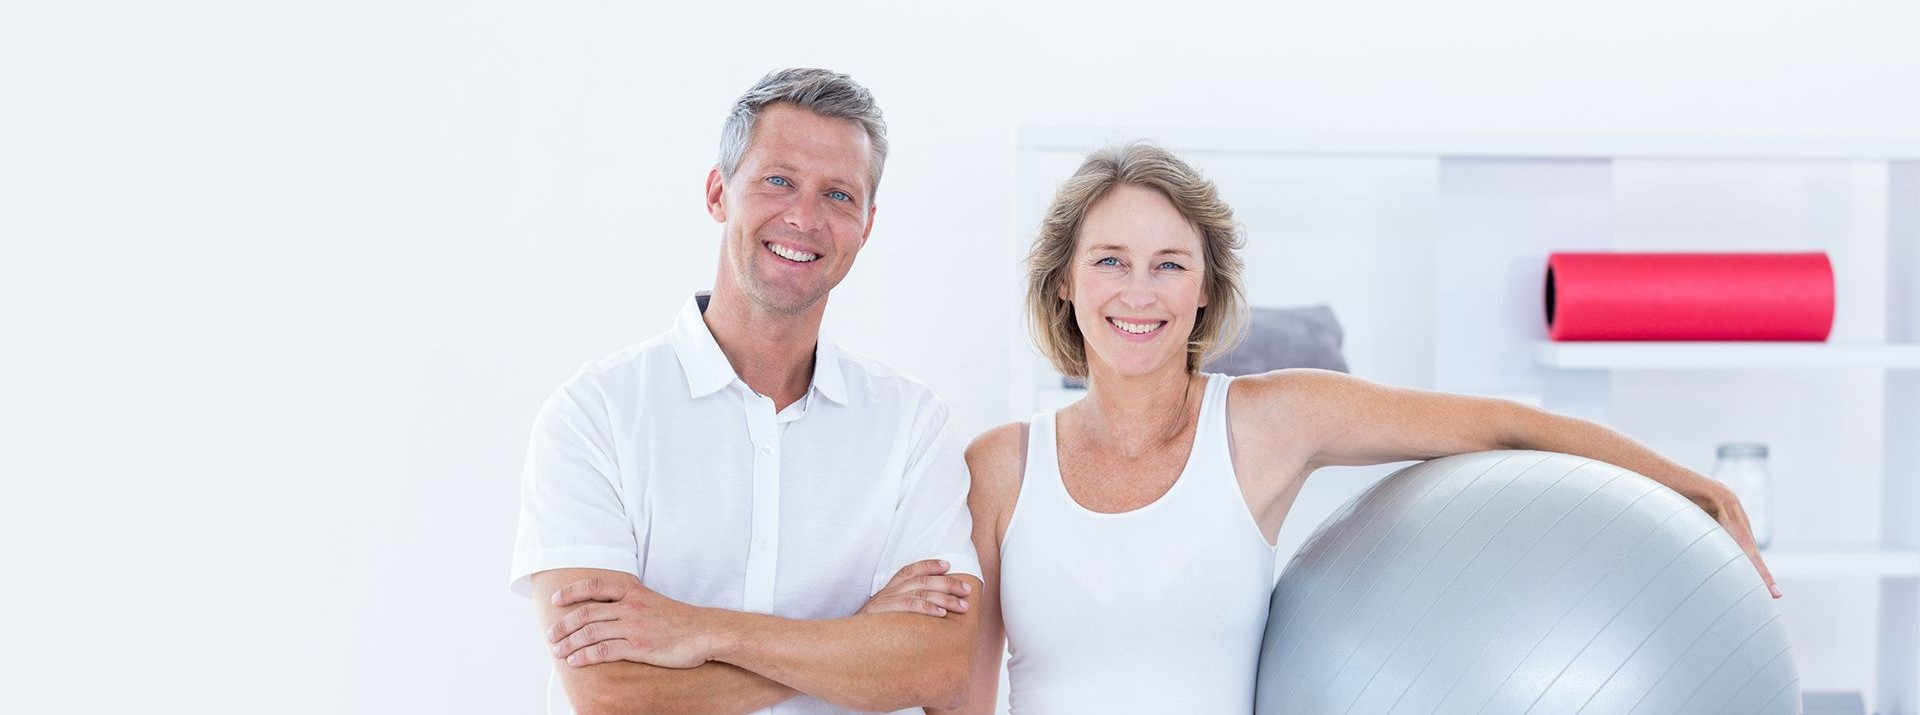 We are a unique Practicing naturopathic medicine through our previous medical experience since 1987